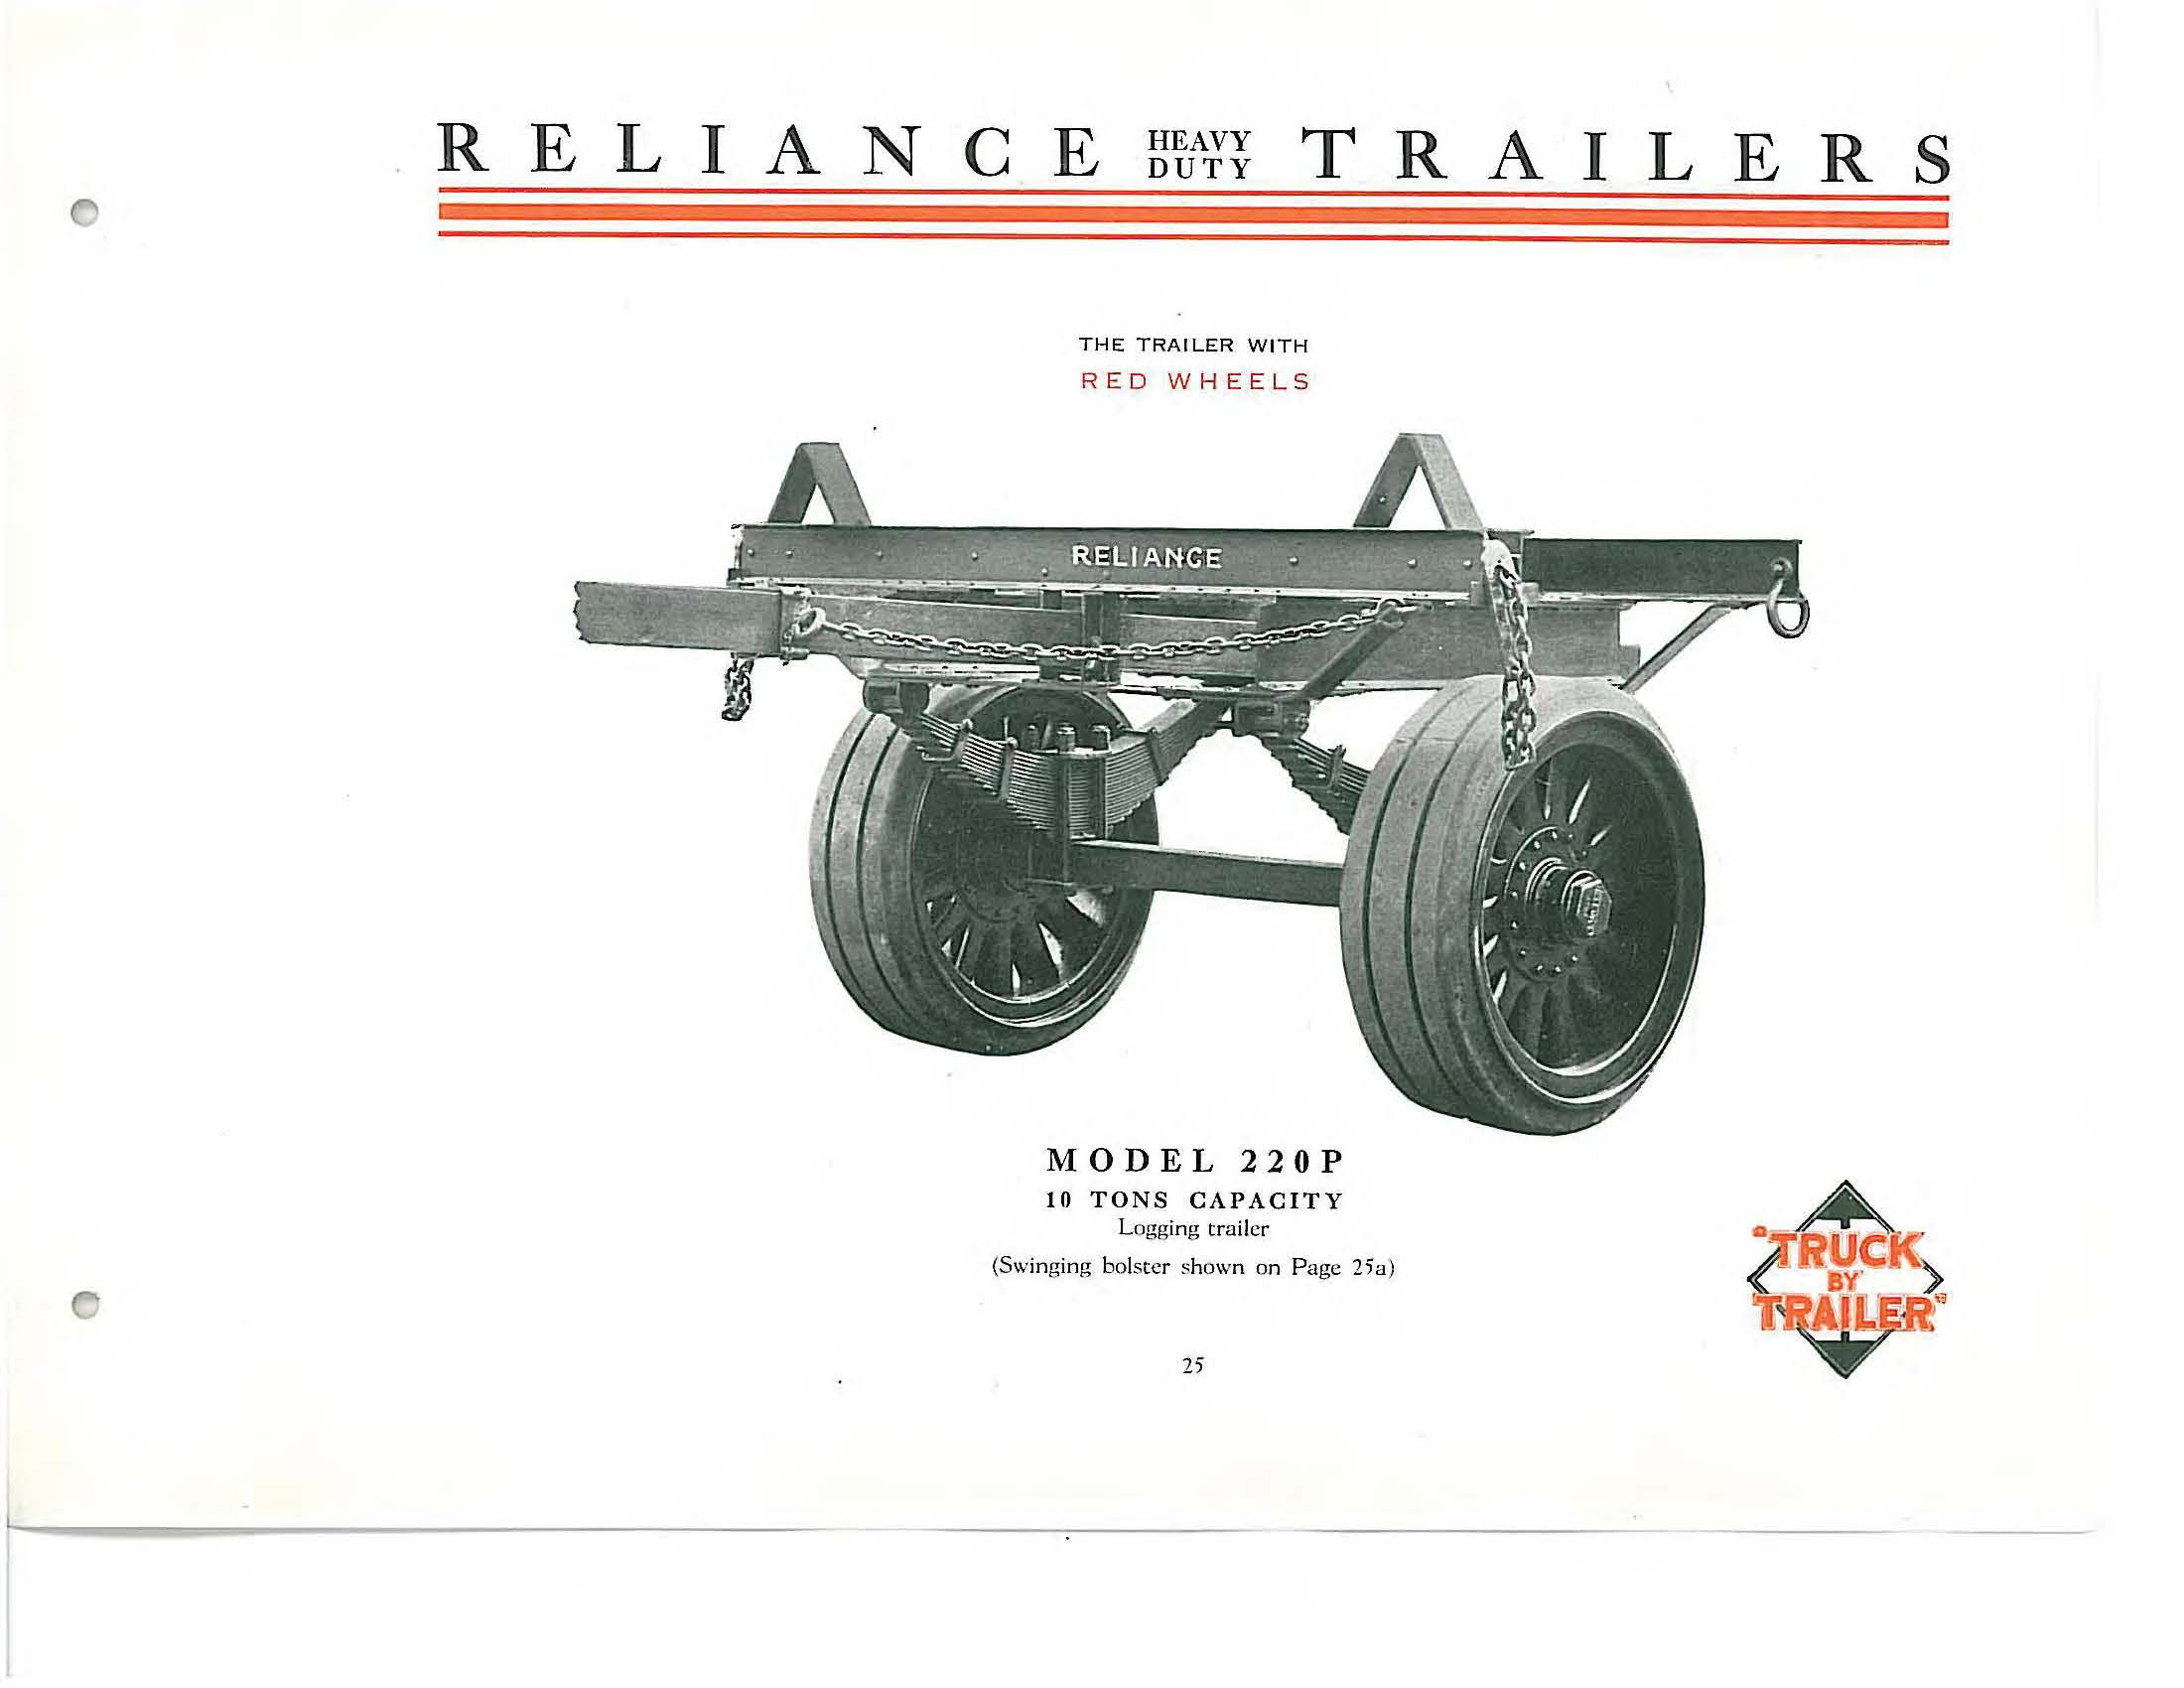 Rola Hitch Mount Bike Carrier 215246261 moreover Wiring Diagram Tandem Axle Trailer Brakes additionally Jost Telescopic Landing Gear Gearbox Outside 480mm Lift 28t 80tpair further Hitch Pin 0 203 Hole in addition Dexter Electric Over Hydraulic Wiring Diagram. on trailer parts